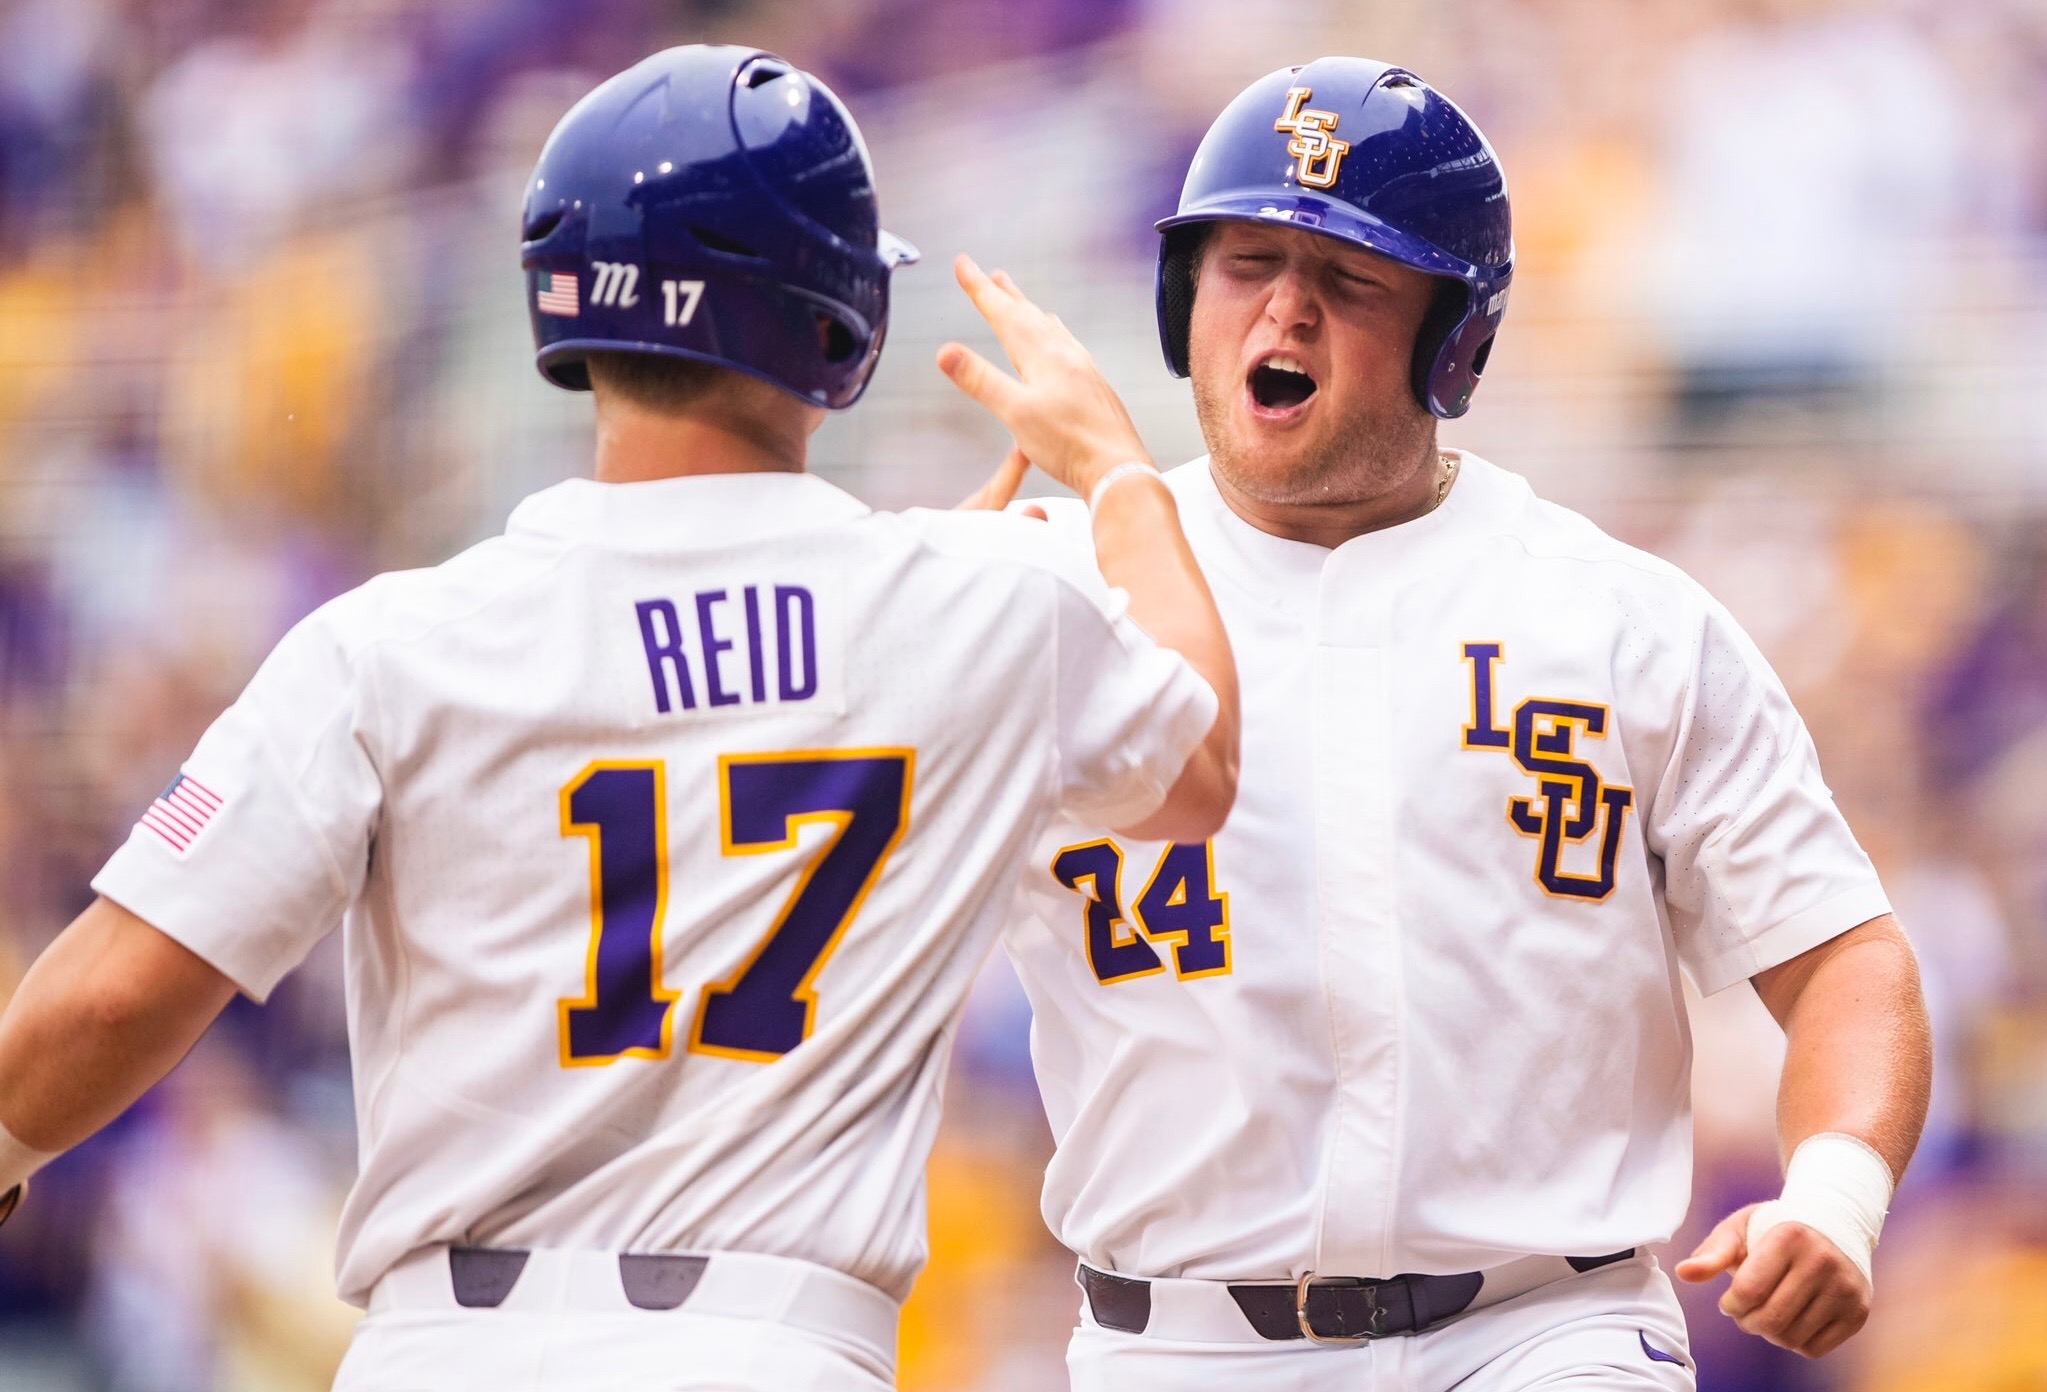 LSU routs Stony Brook in regional opener, 17-3